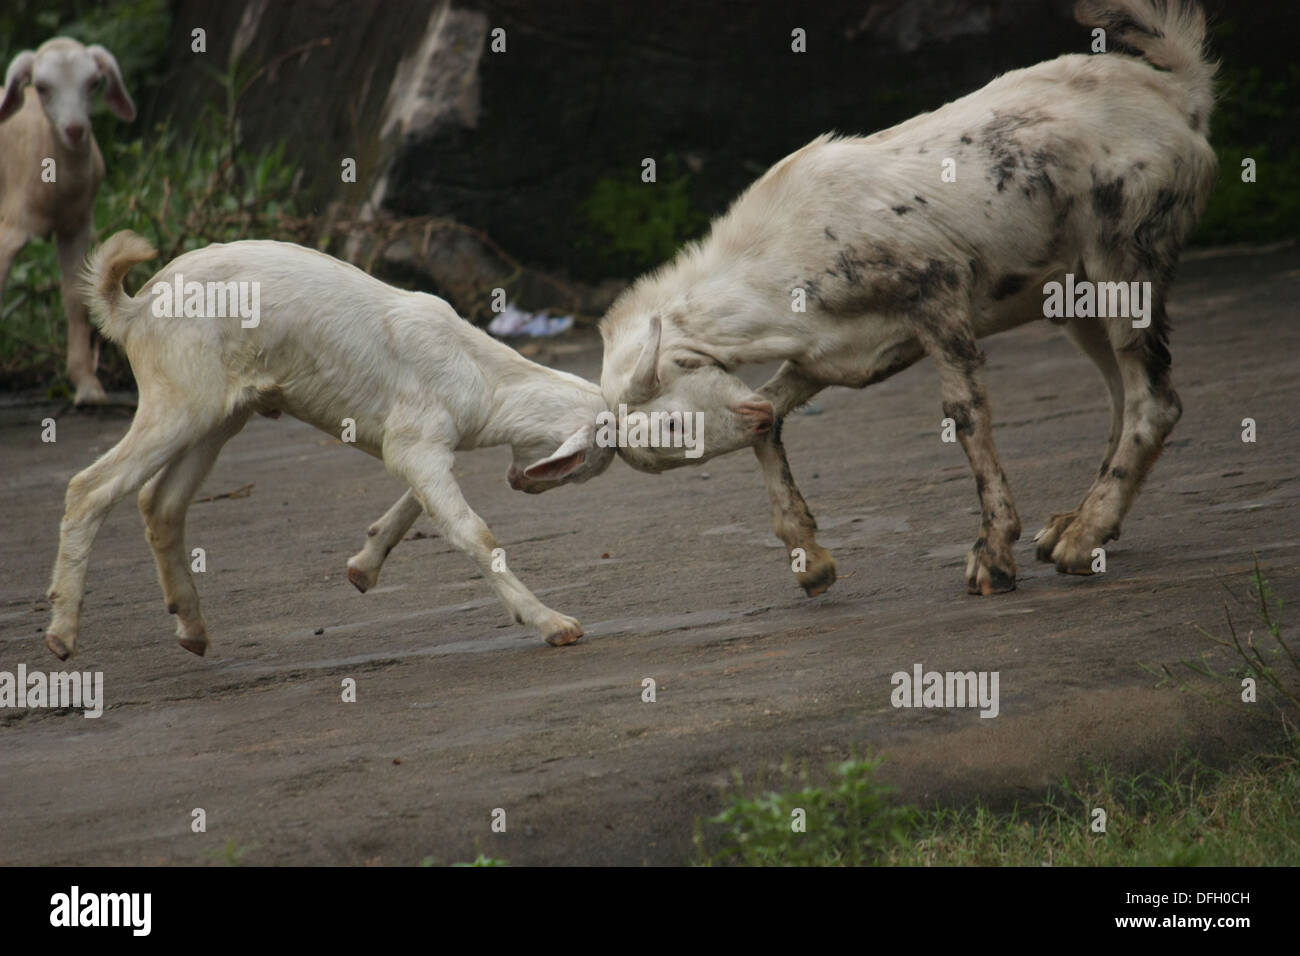 Perfect Timing -  A timely snap shows the 'head on collision' of two goats. - Stock Image